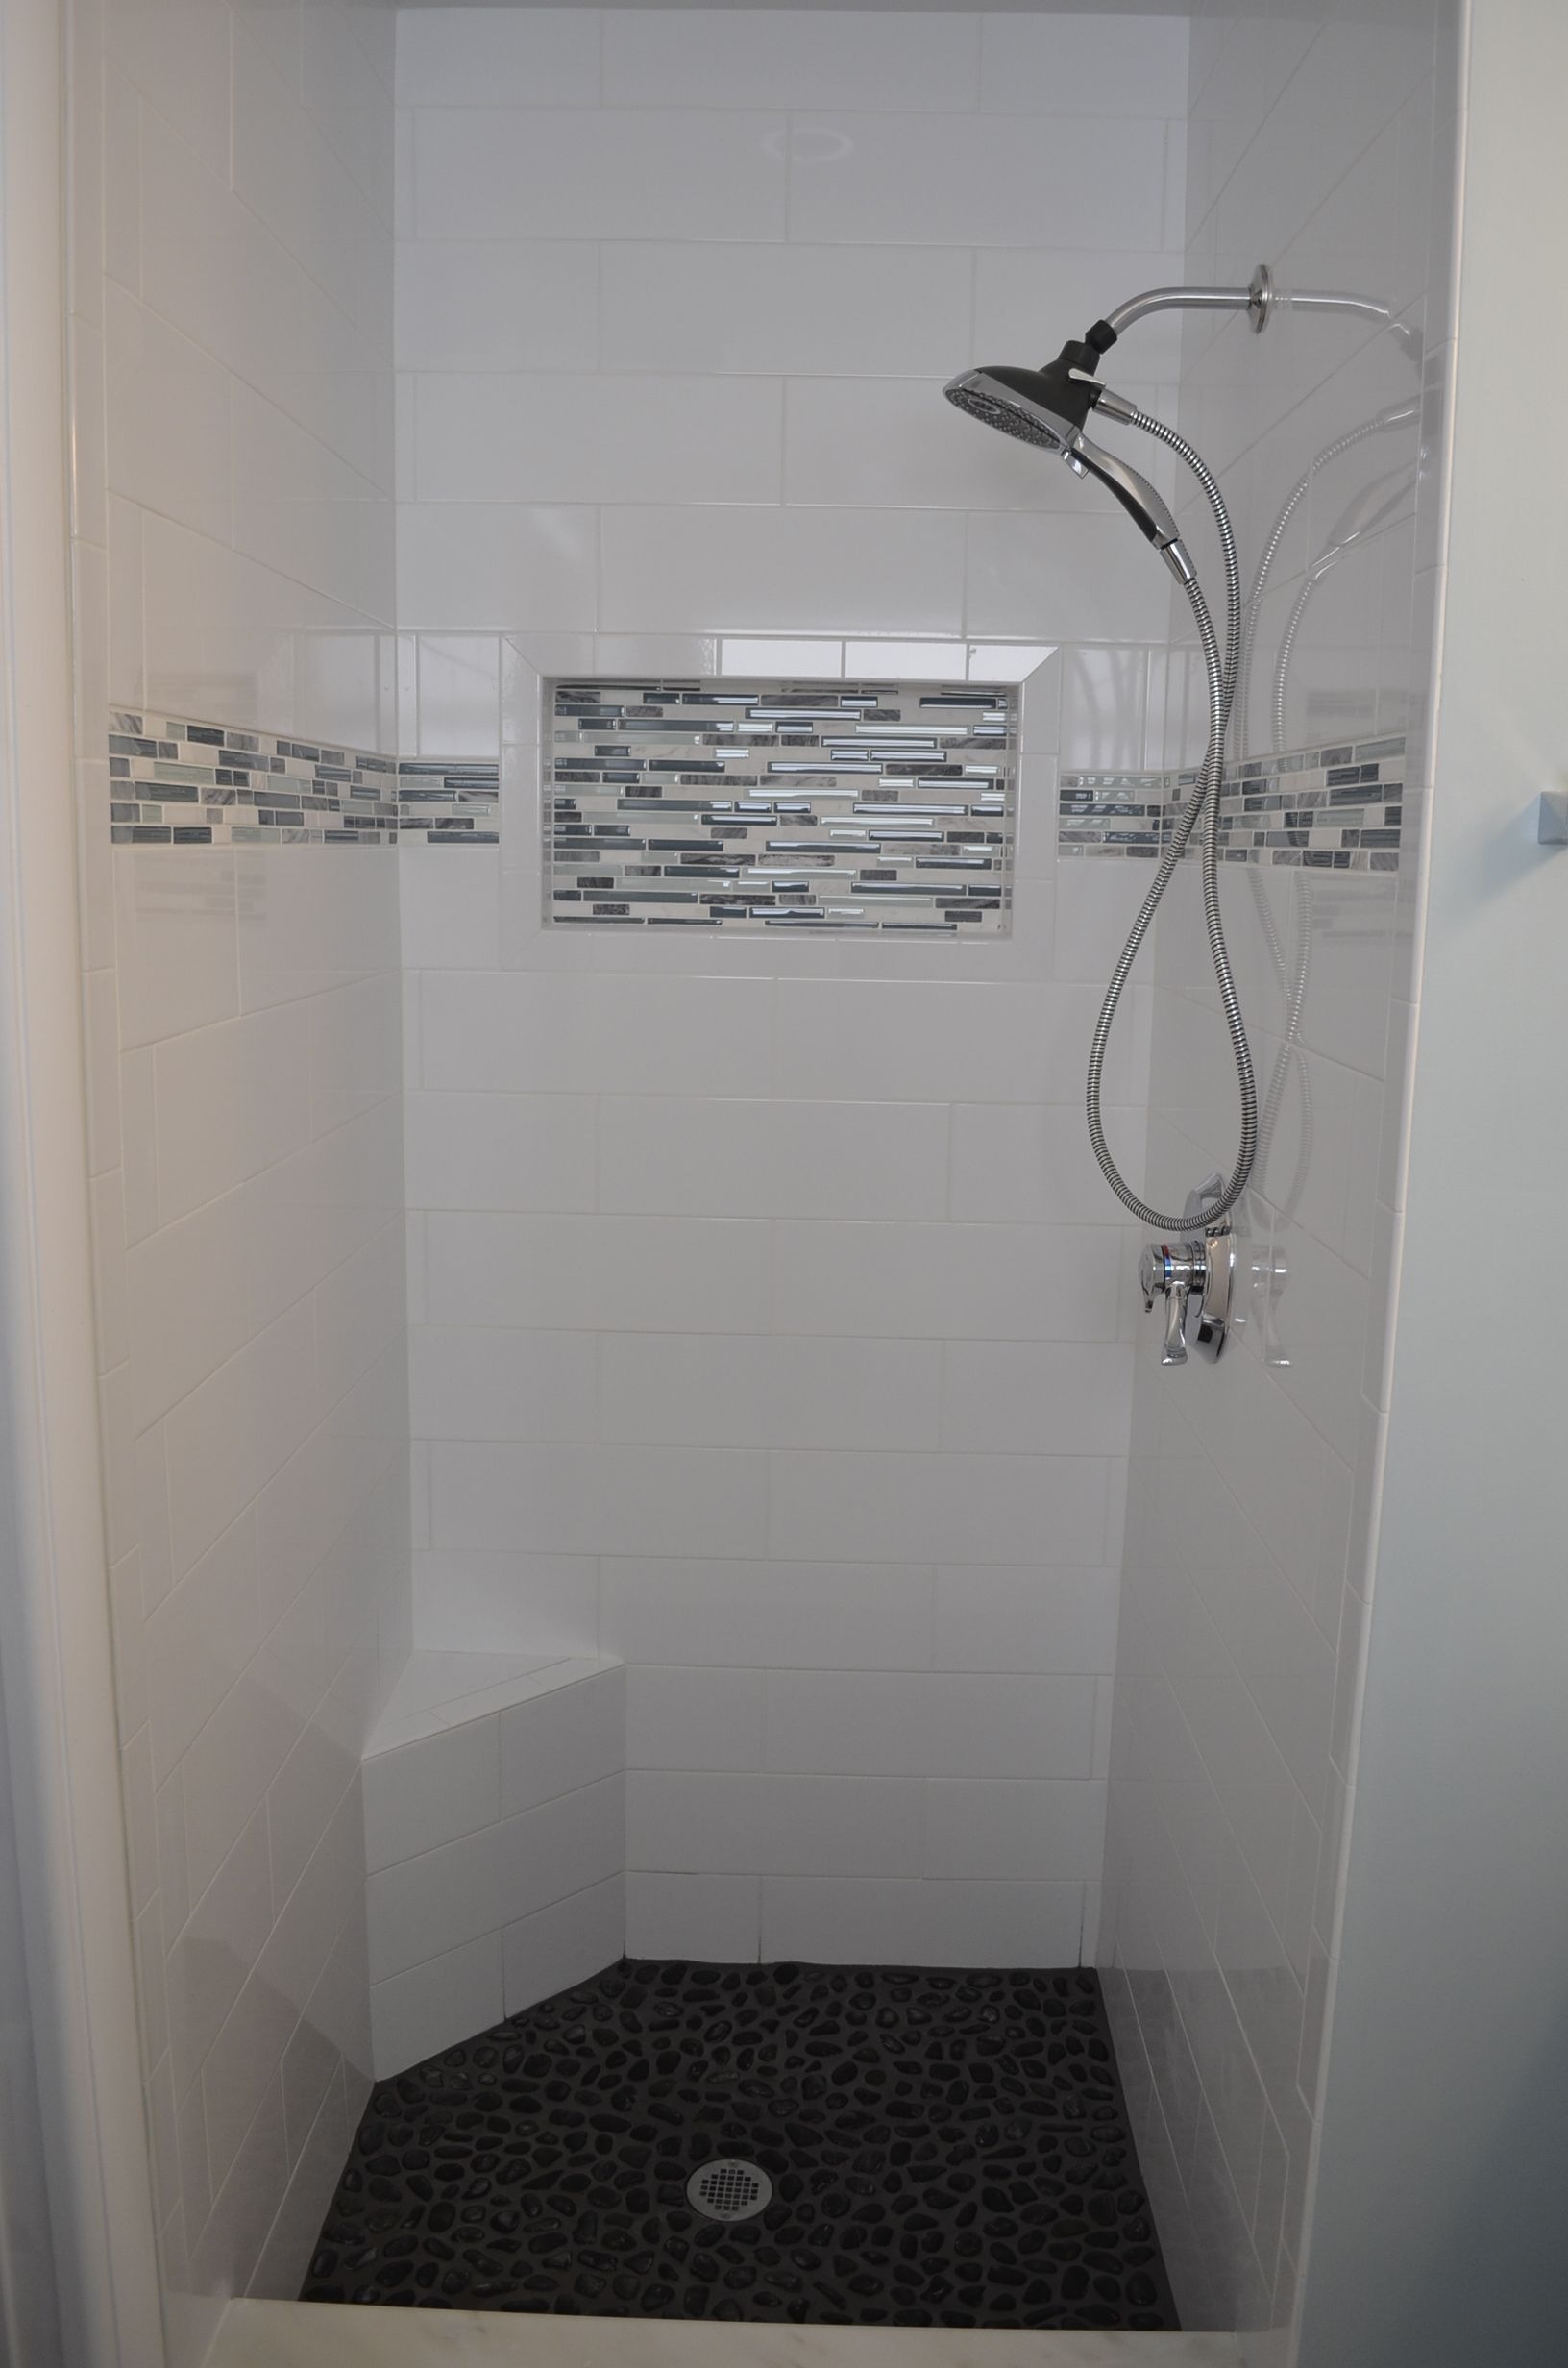 Exceptionnel Small Shower Design By Investcove Properties. Large Format Subway Tile W/  Marble U0026 Glass Listello, And River Rock Shower Floor. Custom Extra Large  Nook.